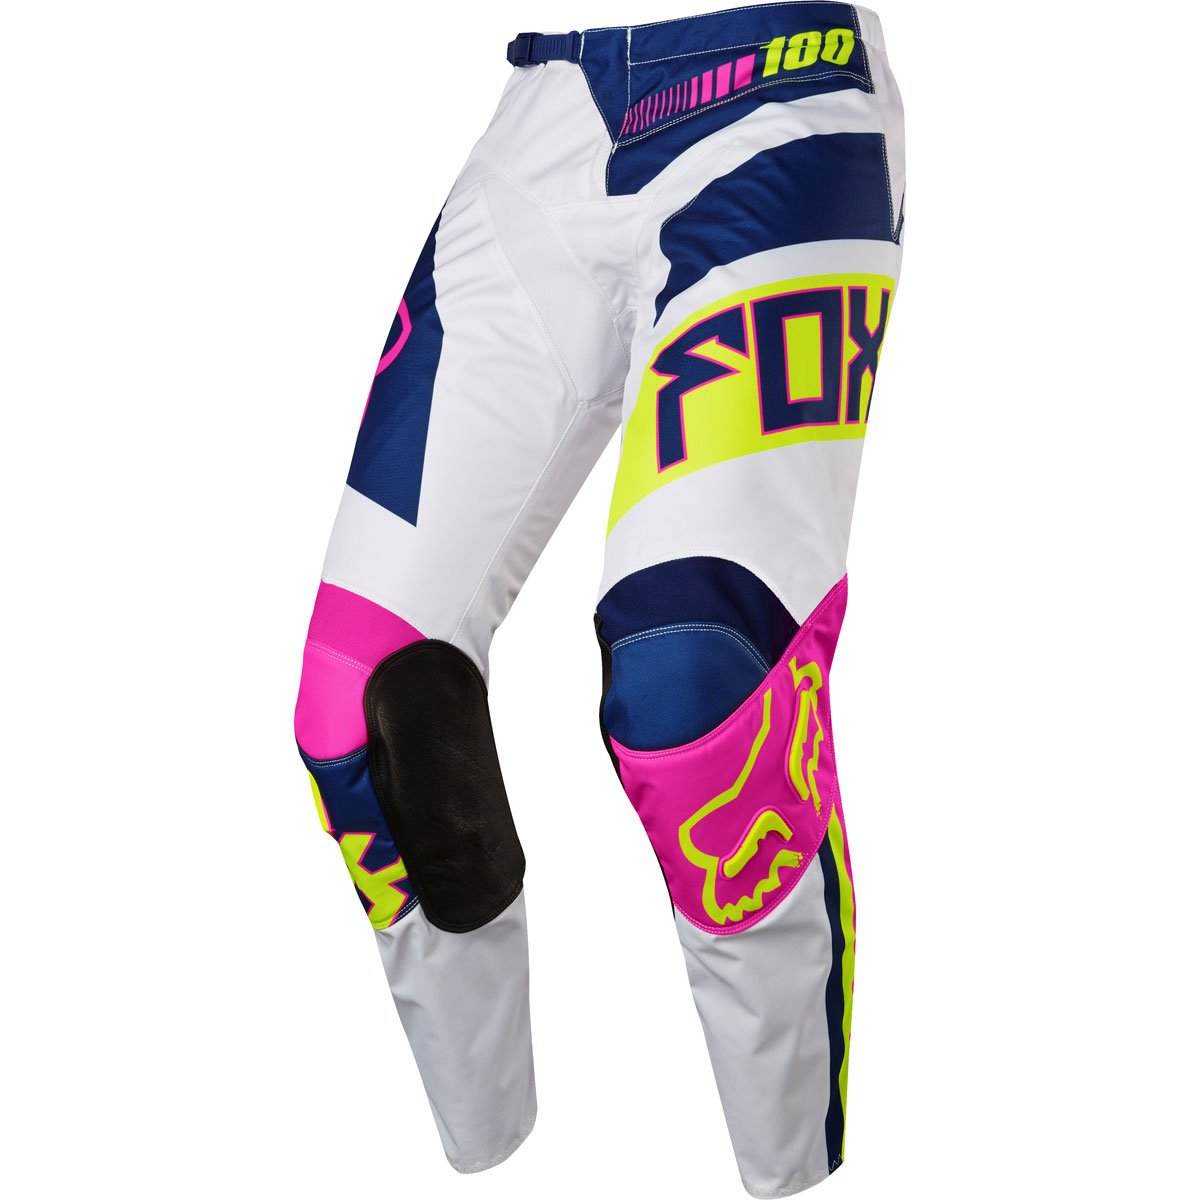 Fox Racing 180 Falcon Youth Boys Off-Road Motorcycle Pants - Navy/White / Size 24